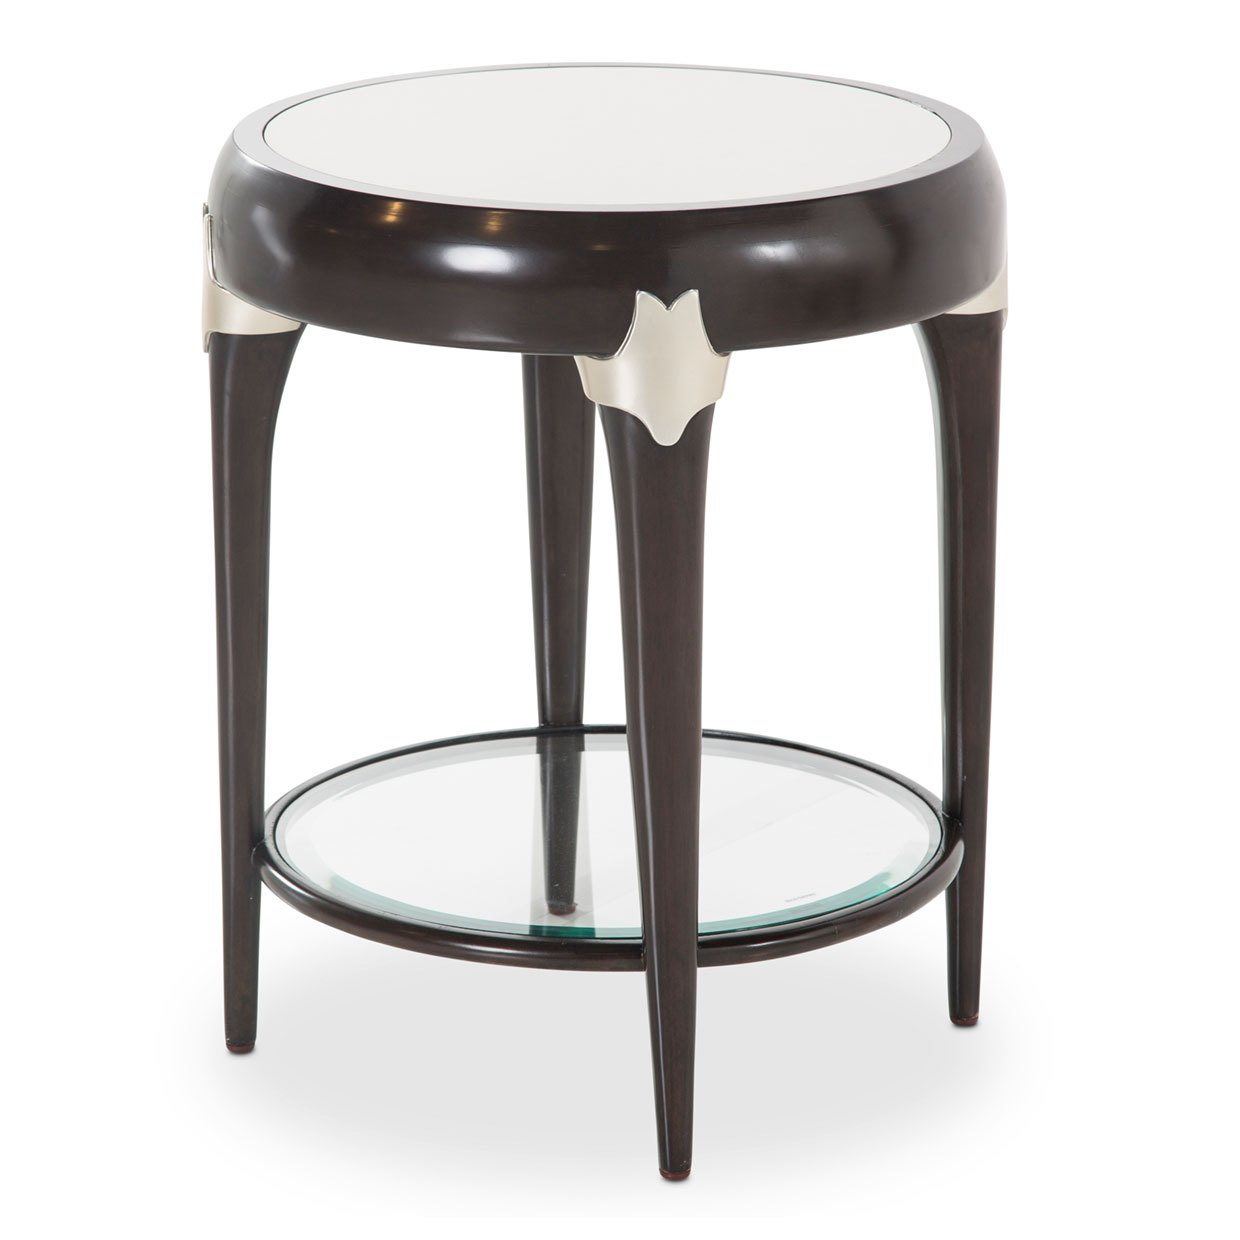 paris chic round accent table espresso finish usa furniture sauder storage cabinet cube tables ikea blue leather chair trestle measurements carpet threshold trim cream metal side